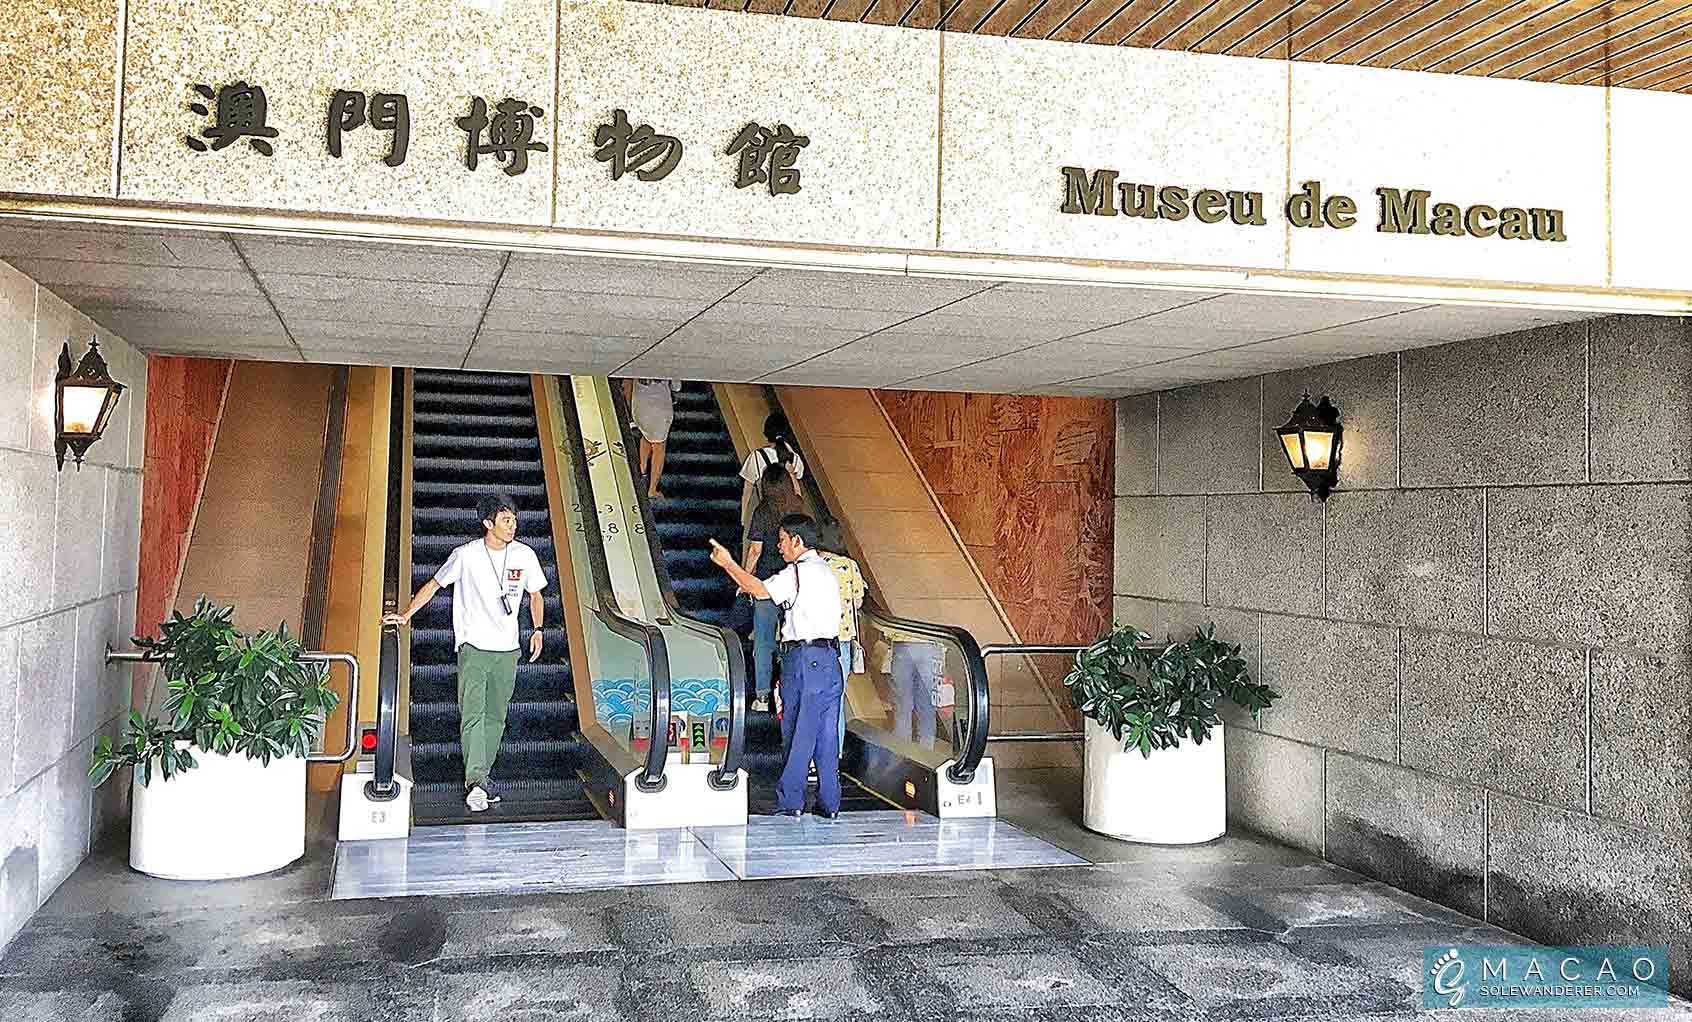 Museu De Macao Entrance